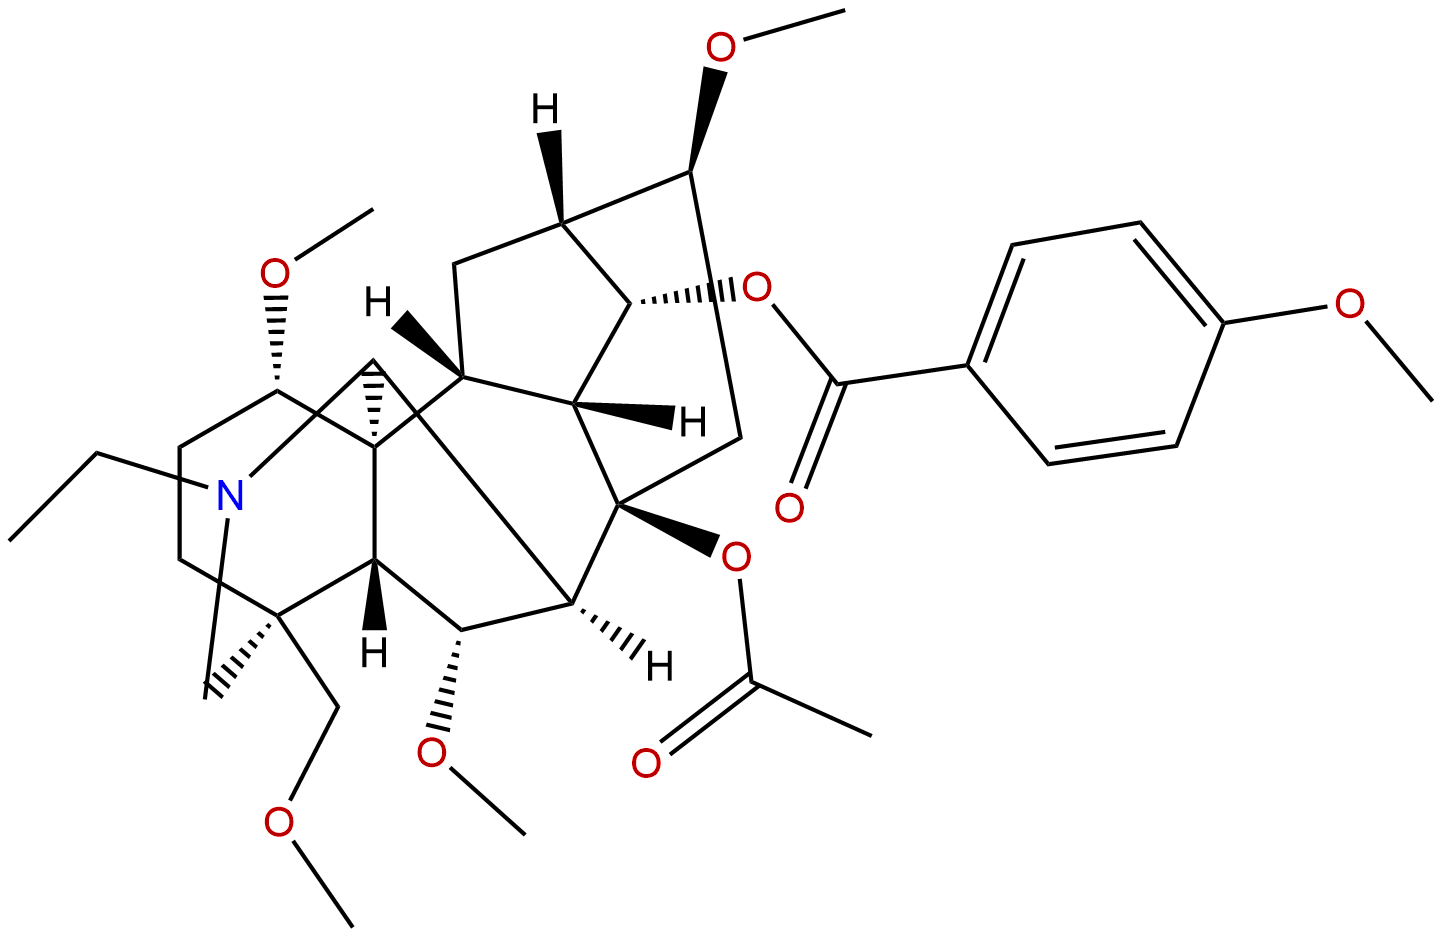 Foresaconitine